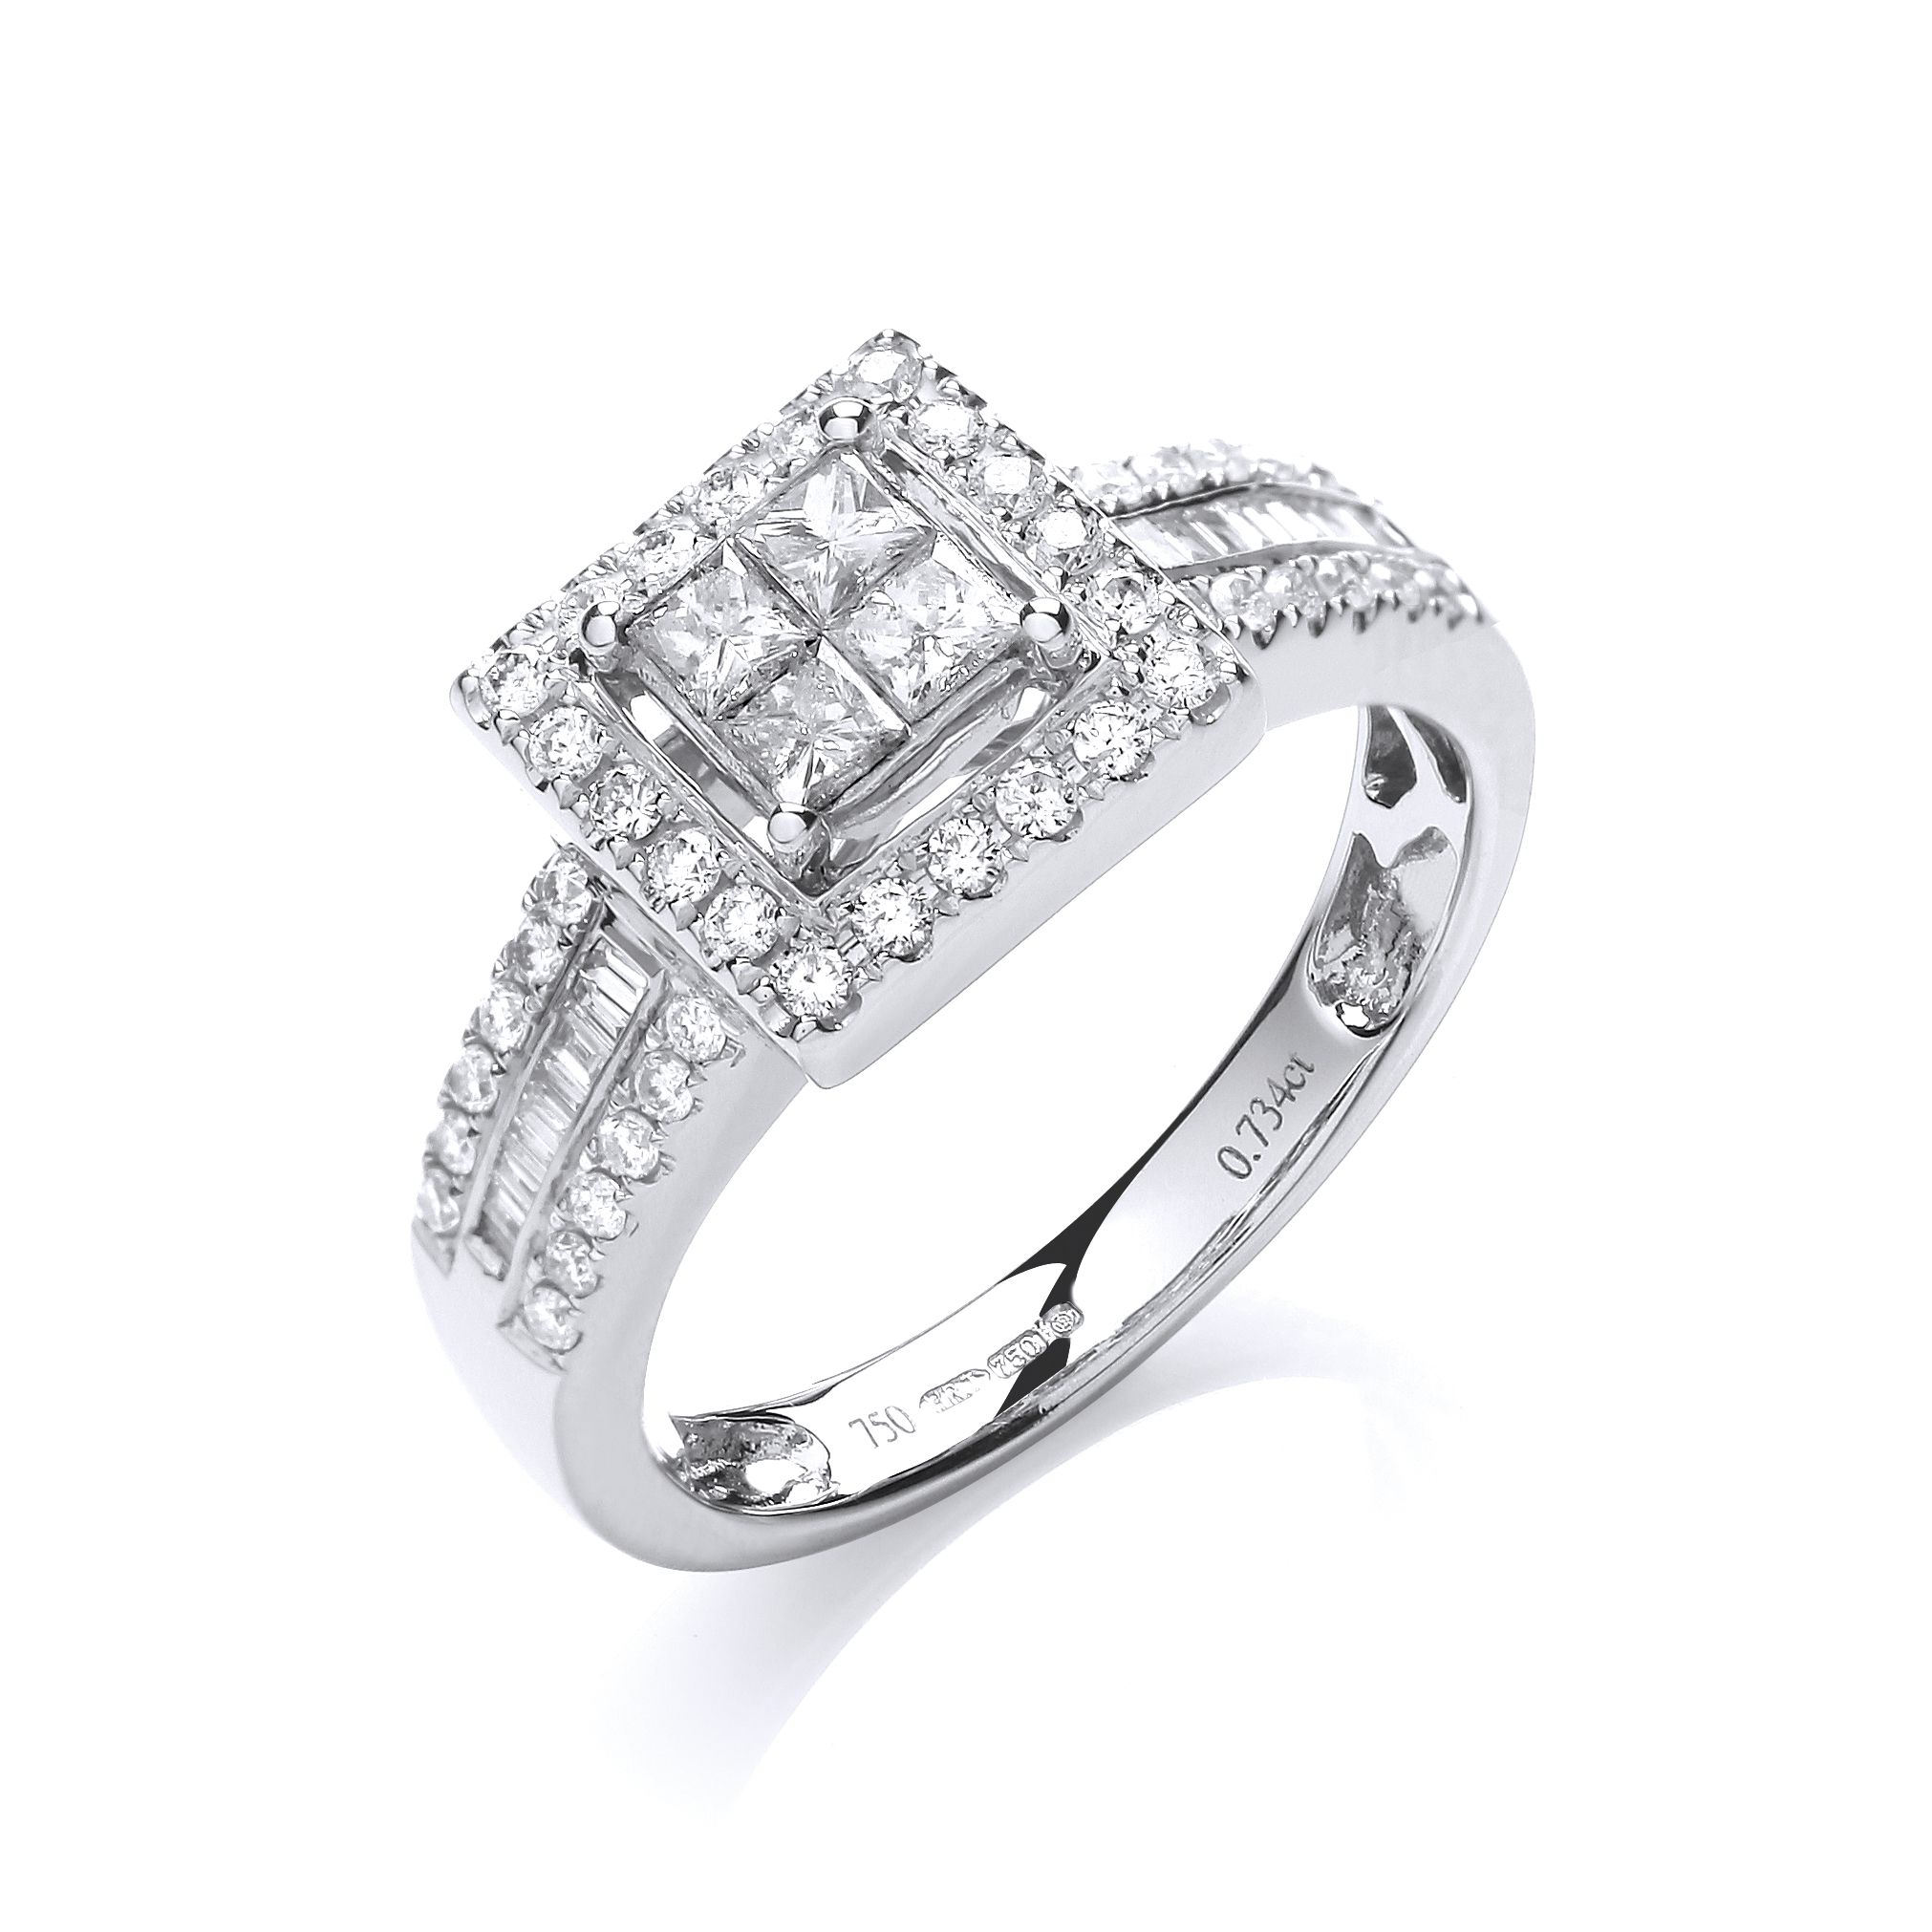 princess size asp gold white k stone cut wedding p and shoulders ring diamond four baguette rings centre